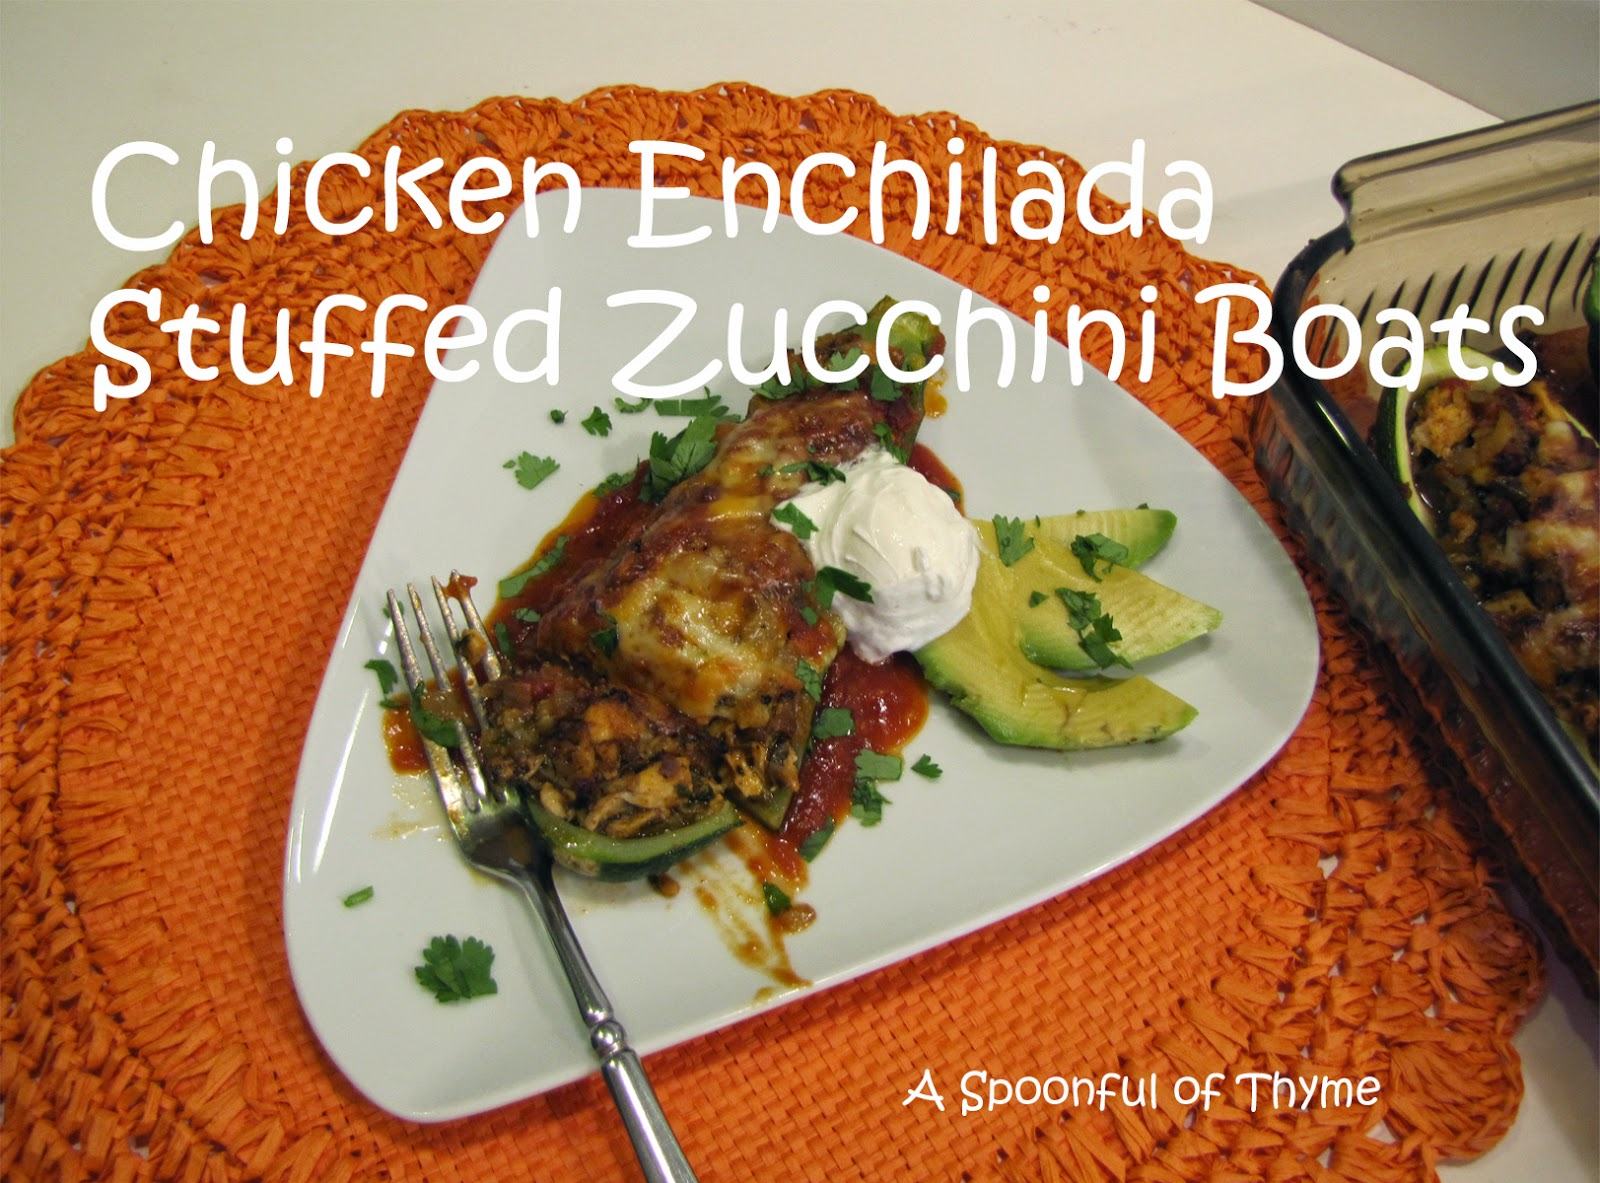 Spoonful of Thyme: Chicken Enchilada Stuffed Zucchini Boats